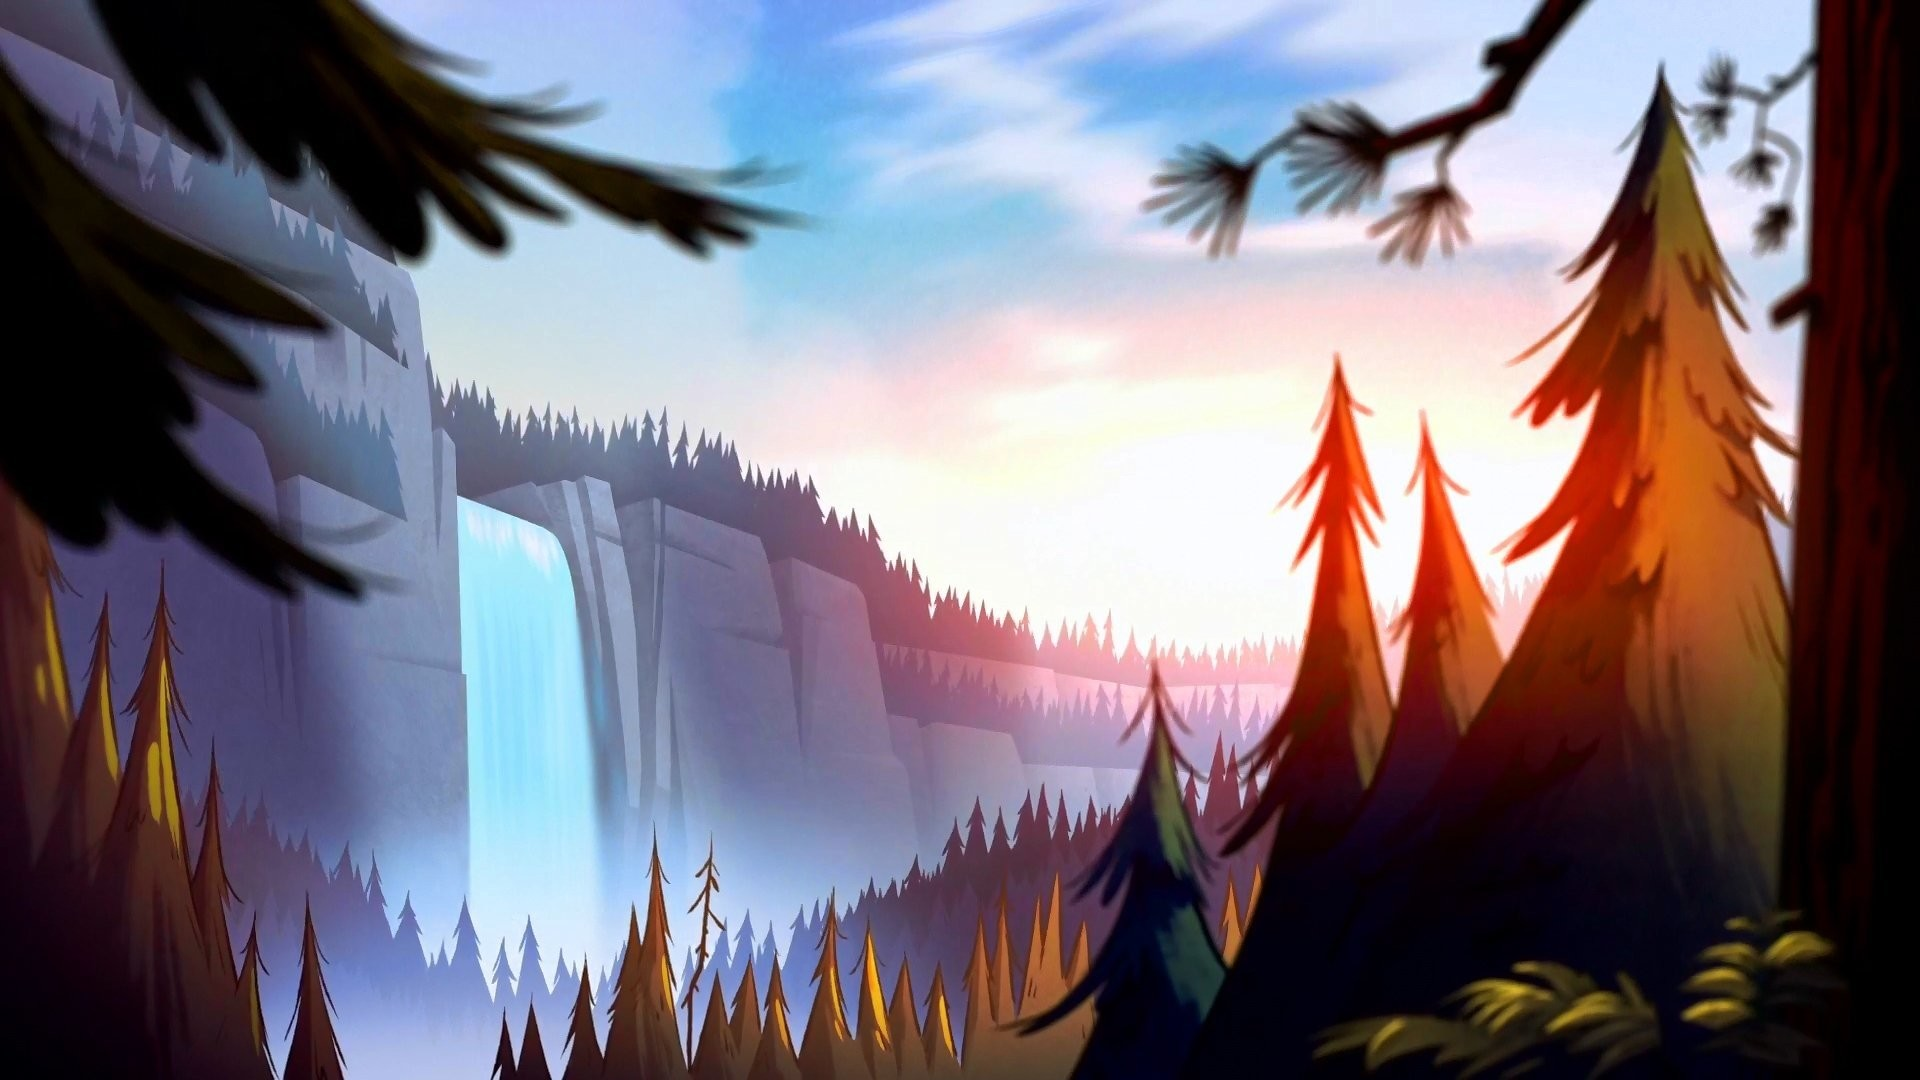 Gravity Falls Computer Wallpaper Die 76 Besten Gravity Falls Wallpapers